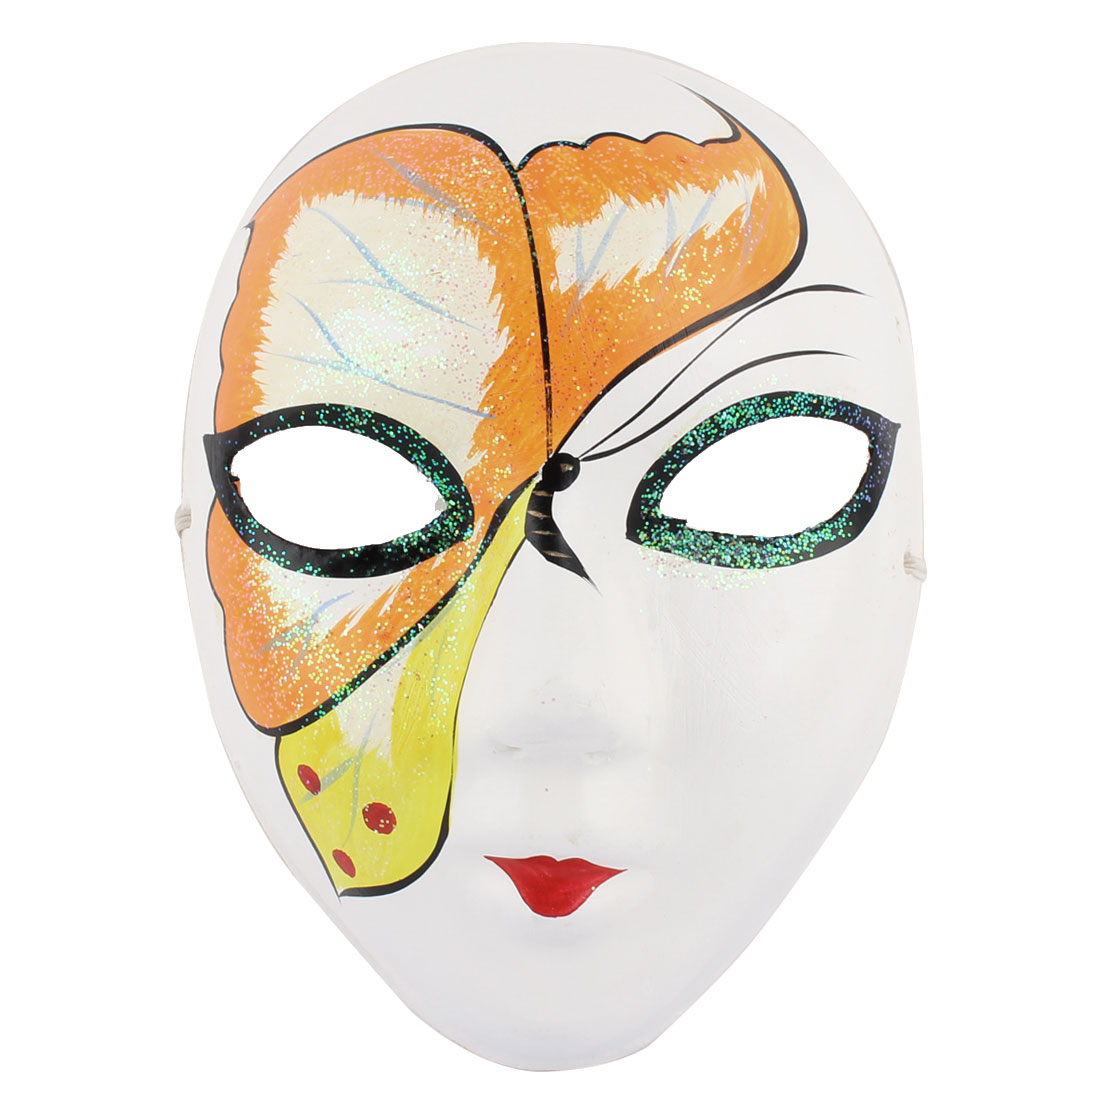 Woman Gypsum Hand Paint Beijing Peking Opera Facial Costume Makeup Mask Orange